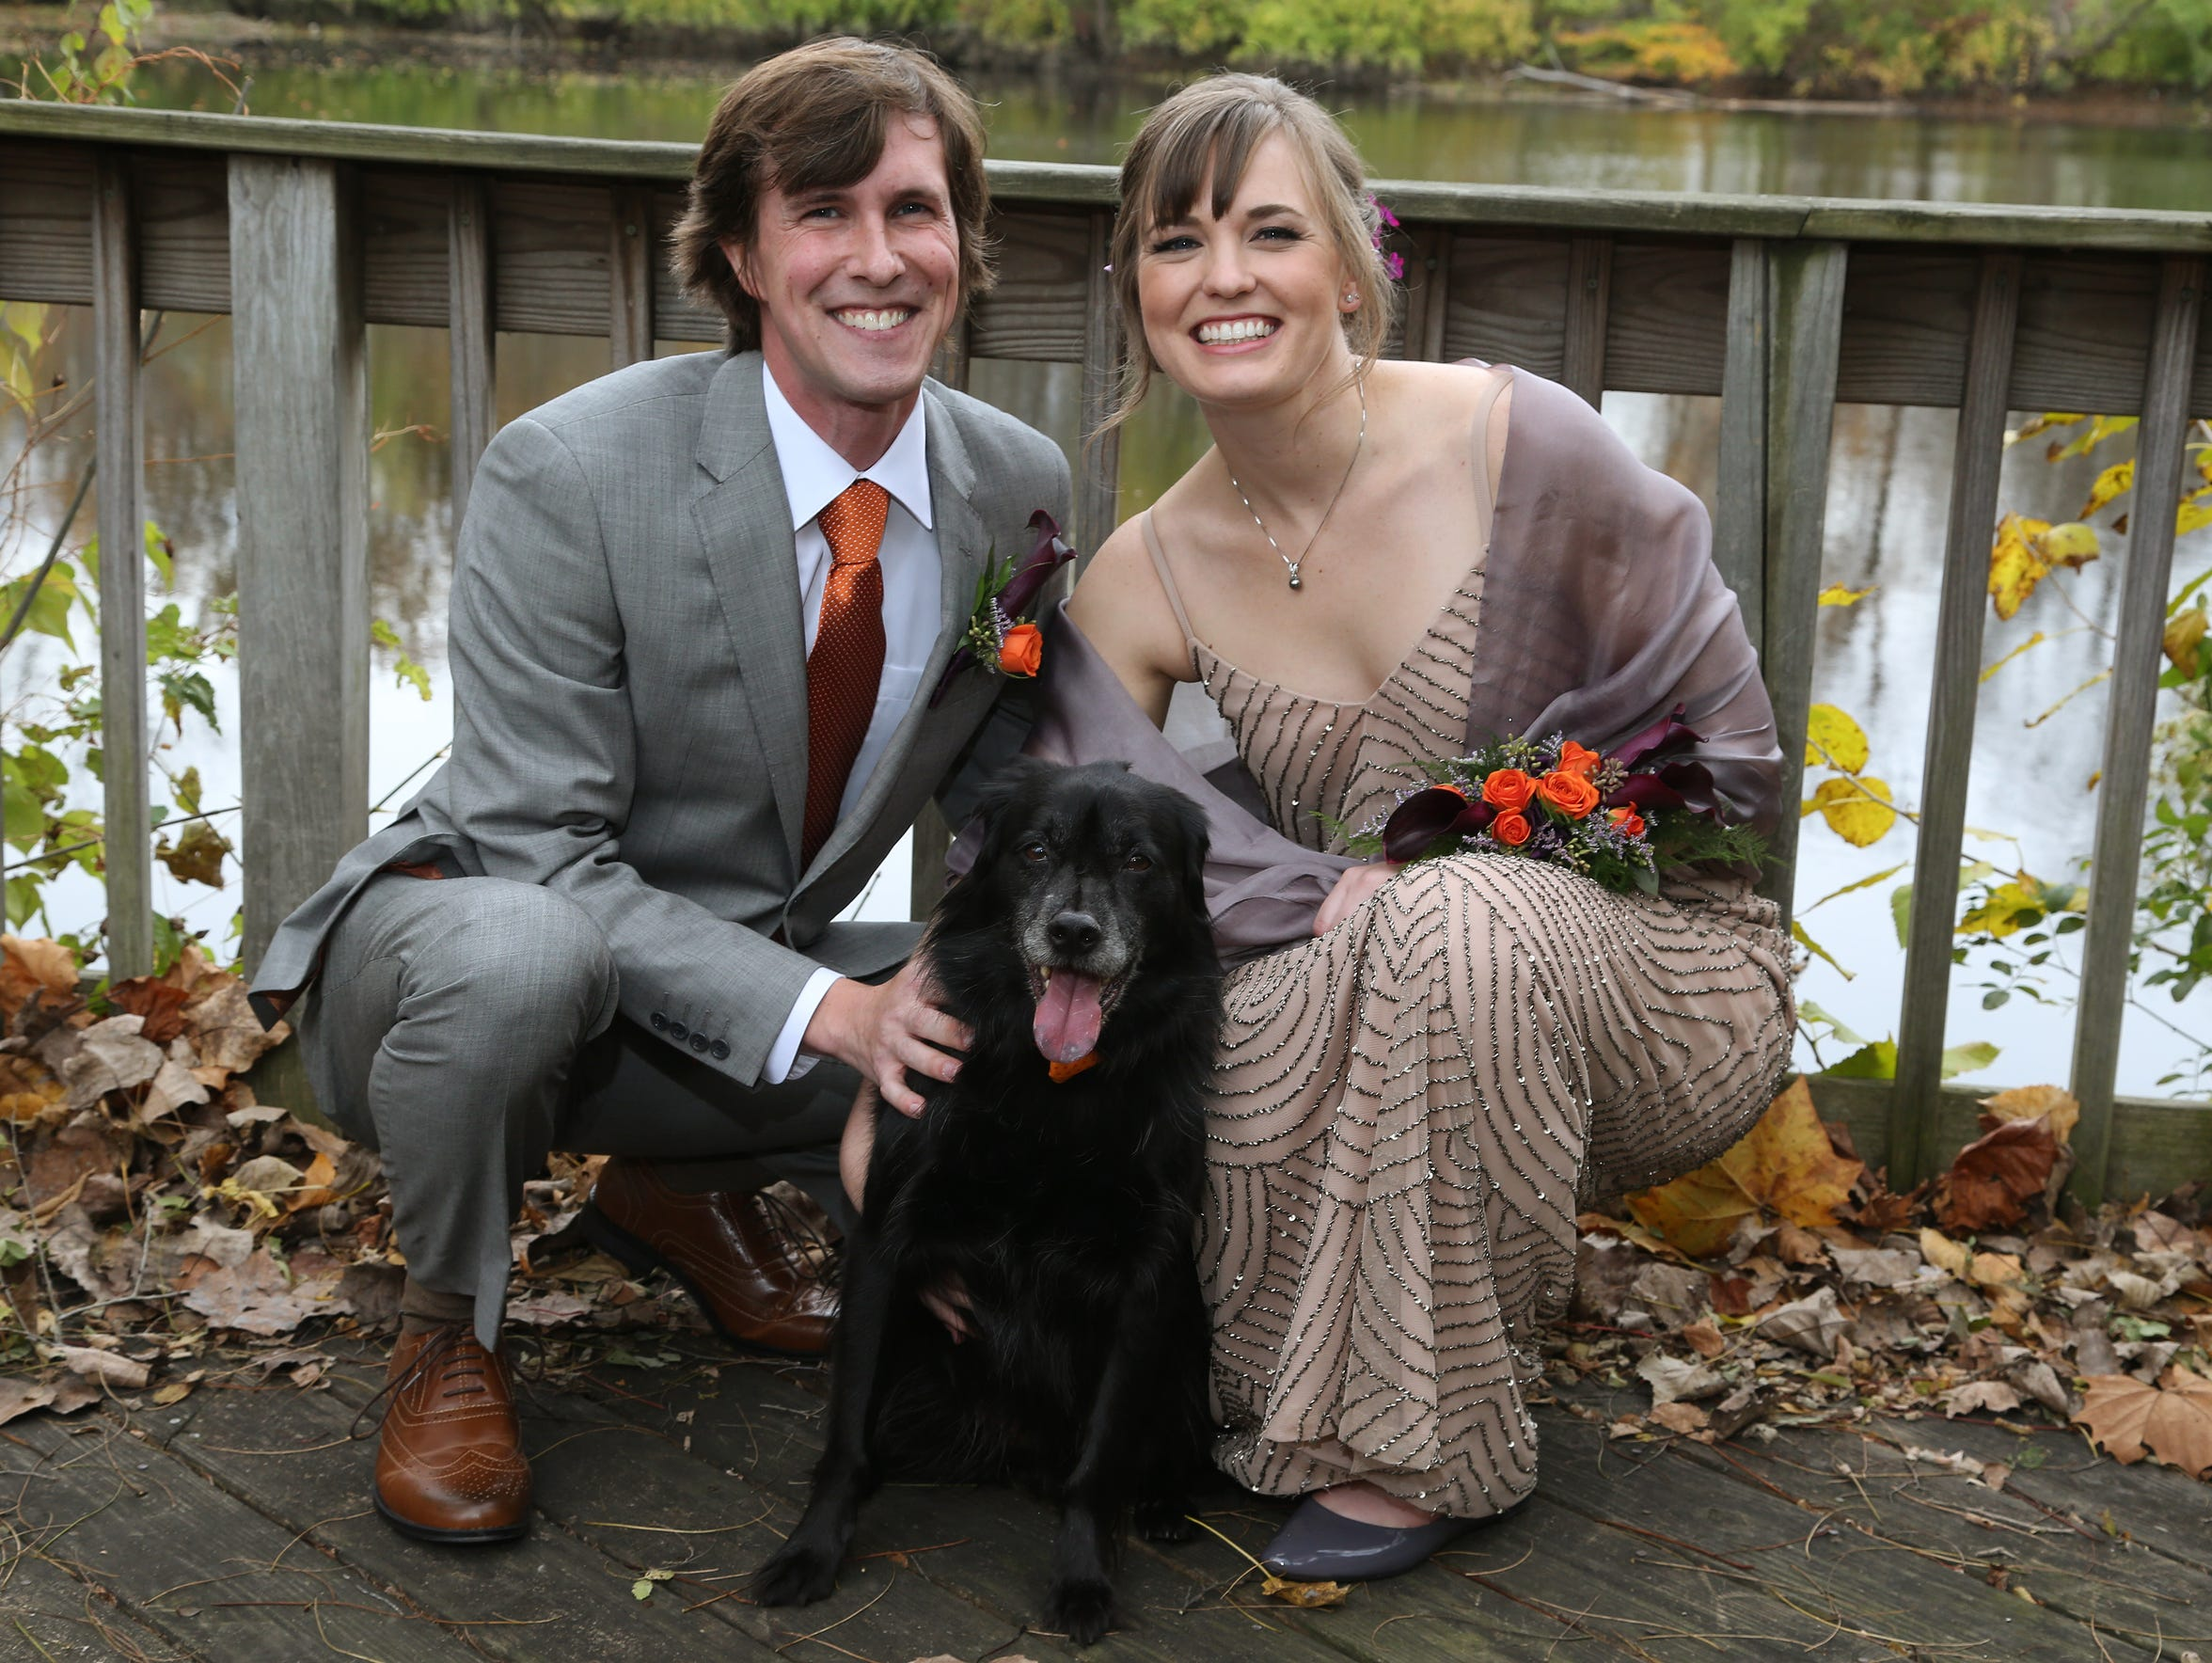 Nora Hertel and Ben Decker pose with their dog Finnigan